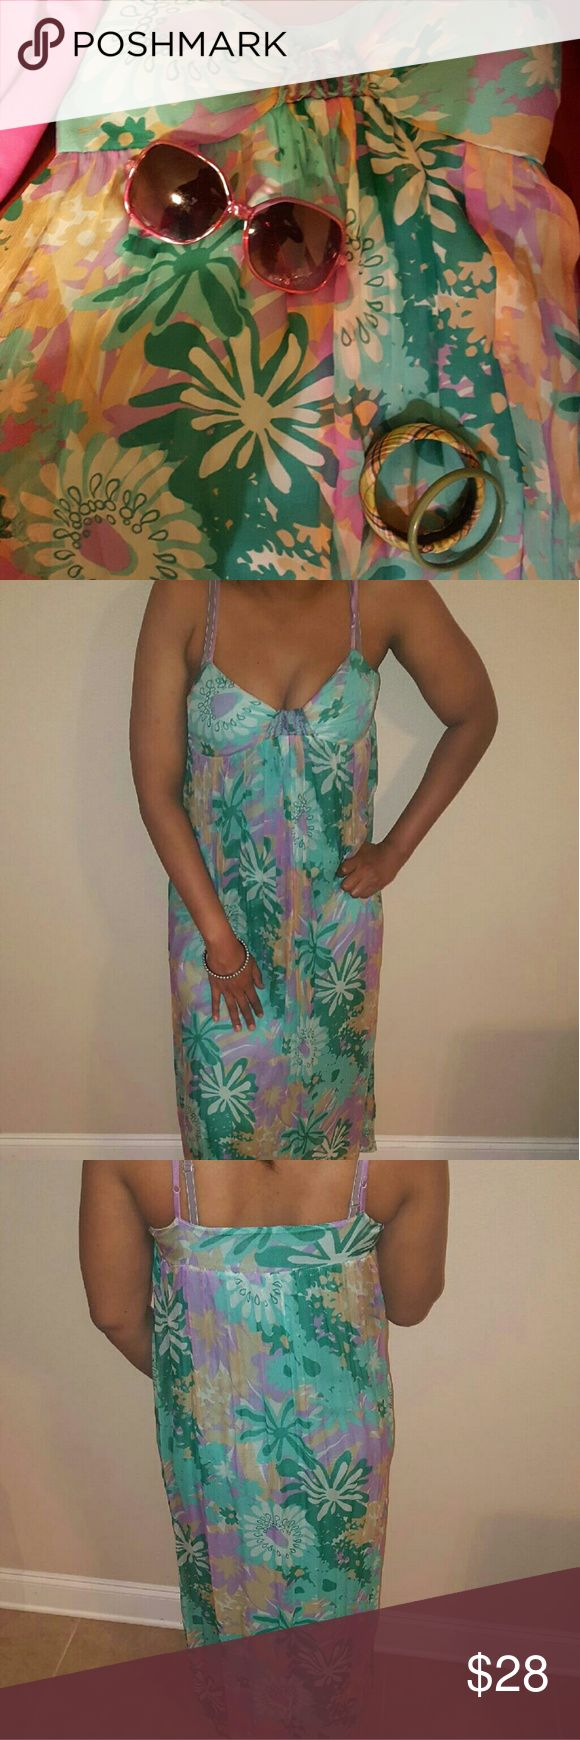 Max Studio Specialty Floral Maxi Dress Beautiful maxi dress, very light, great for spring wear, Floral,spaghetti strap, fits a b cup bra size. New with out tags. Perfect for a sunny day. Max Studio Dresses Maxi